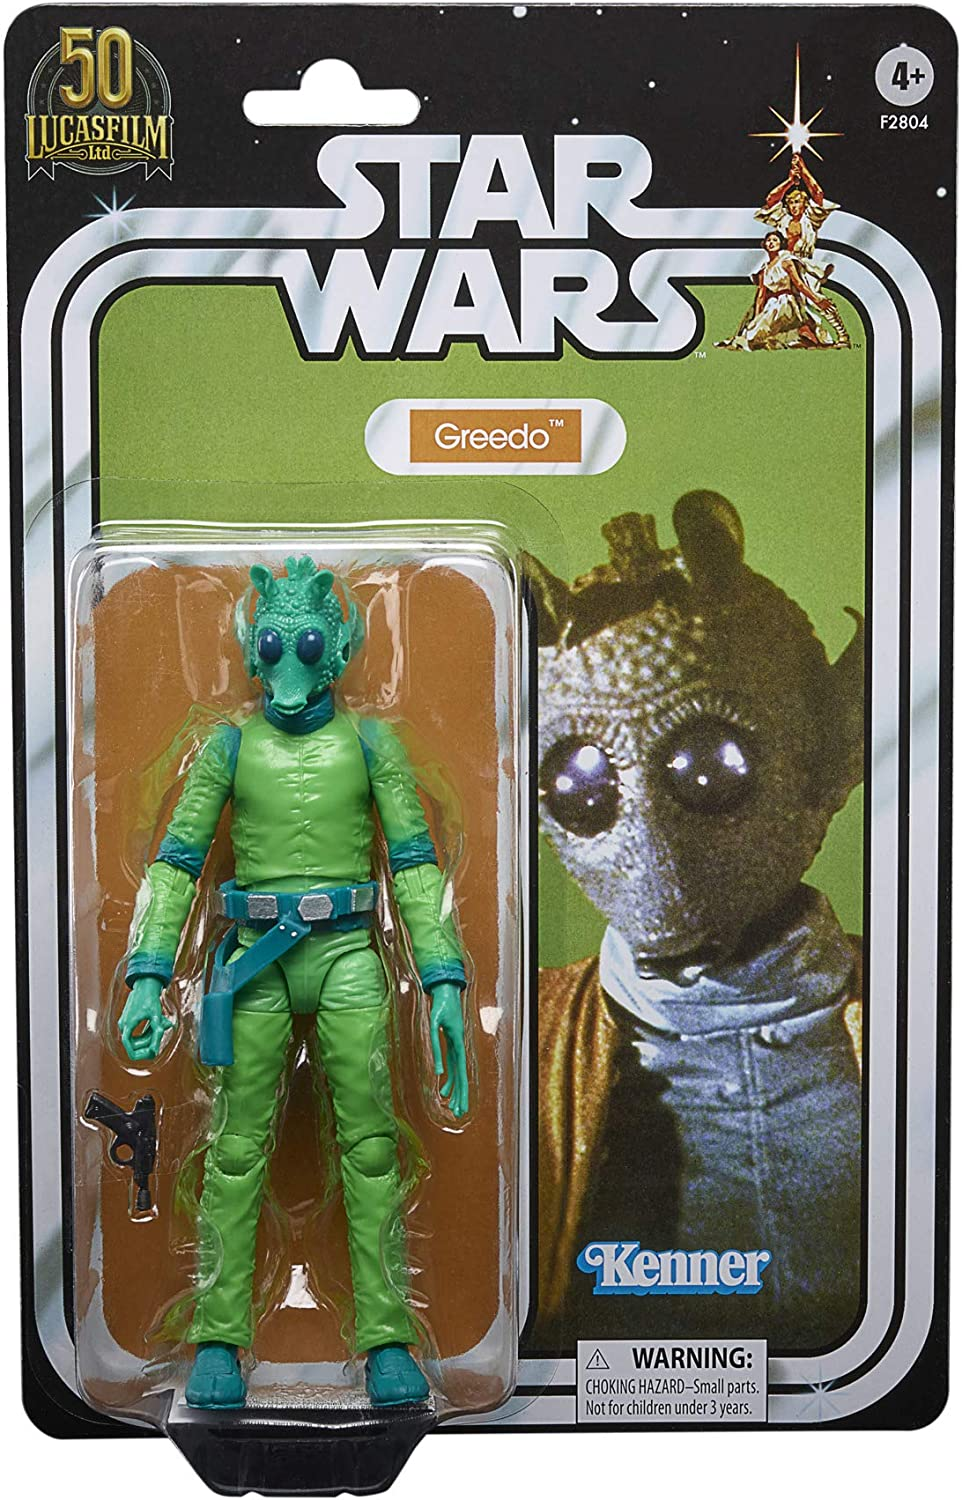 Exclusive STAR WARS The Black Series Greedo 6-Inch-Scale Lucasfilm 50th Anniversary Original Trilogy Collectible Figure